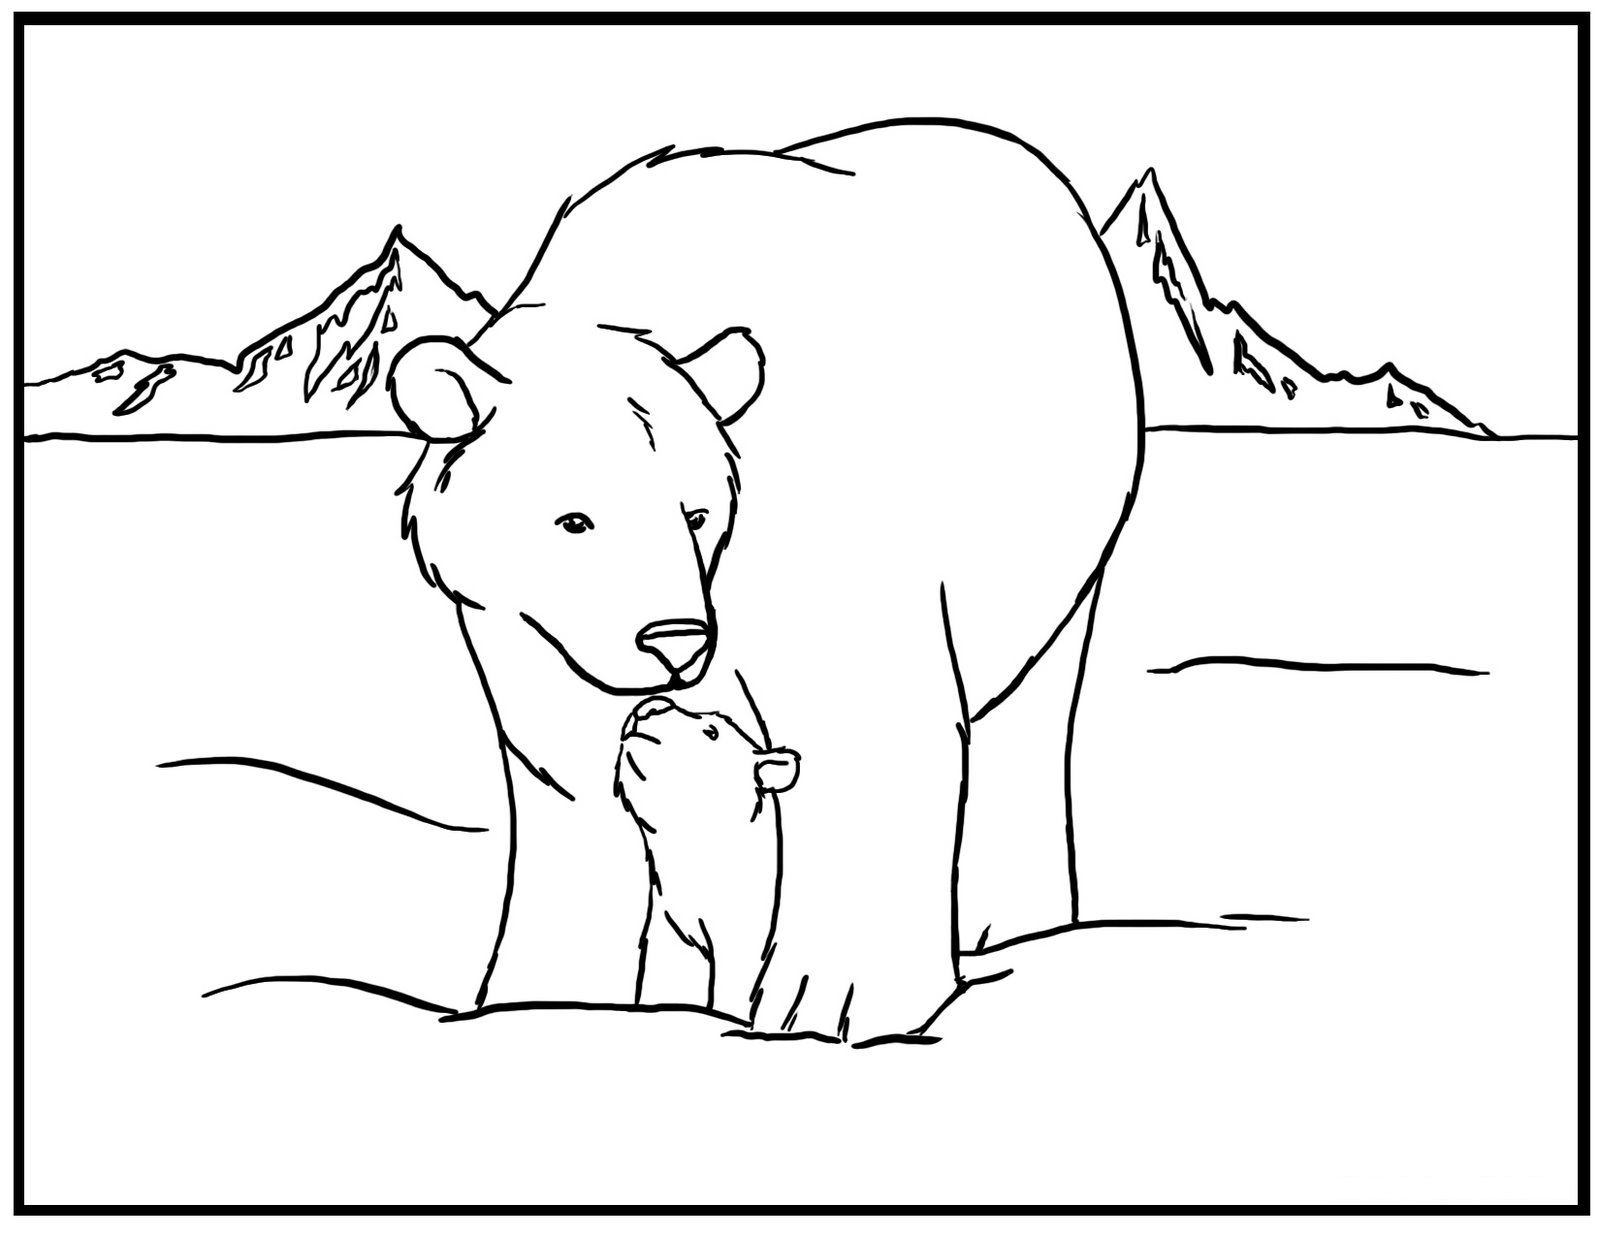 Drawn polar  bear coloring page Bear Coloring Colouring 11 With